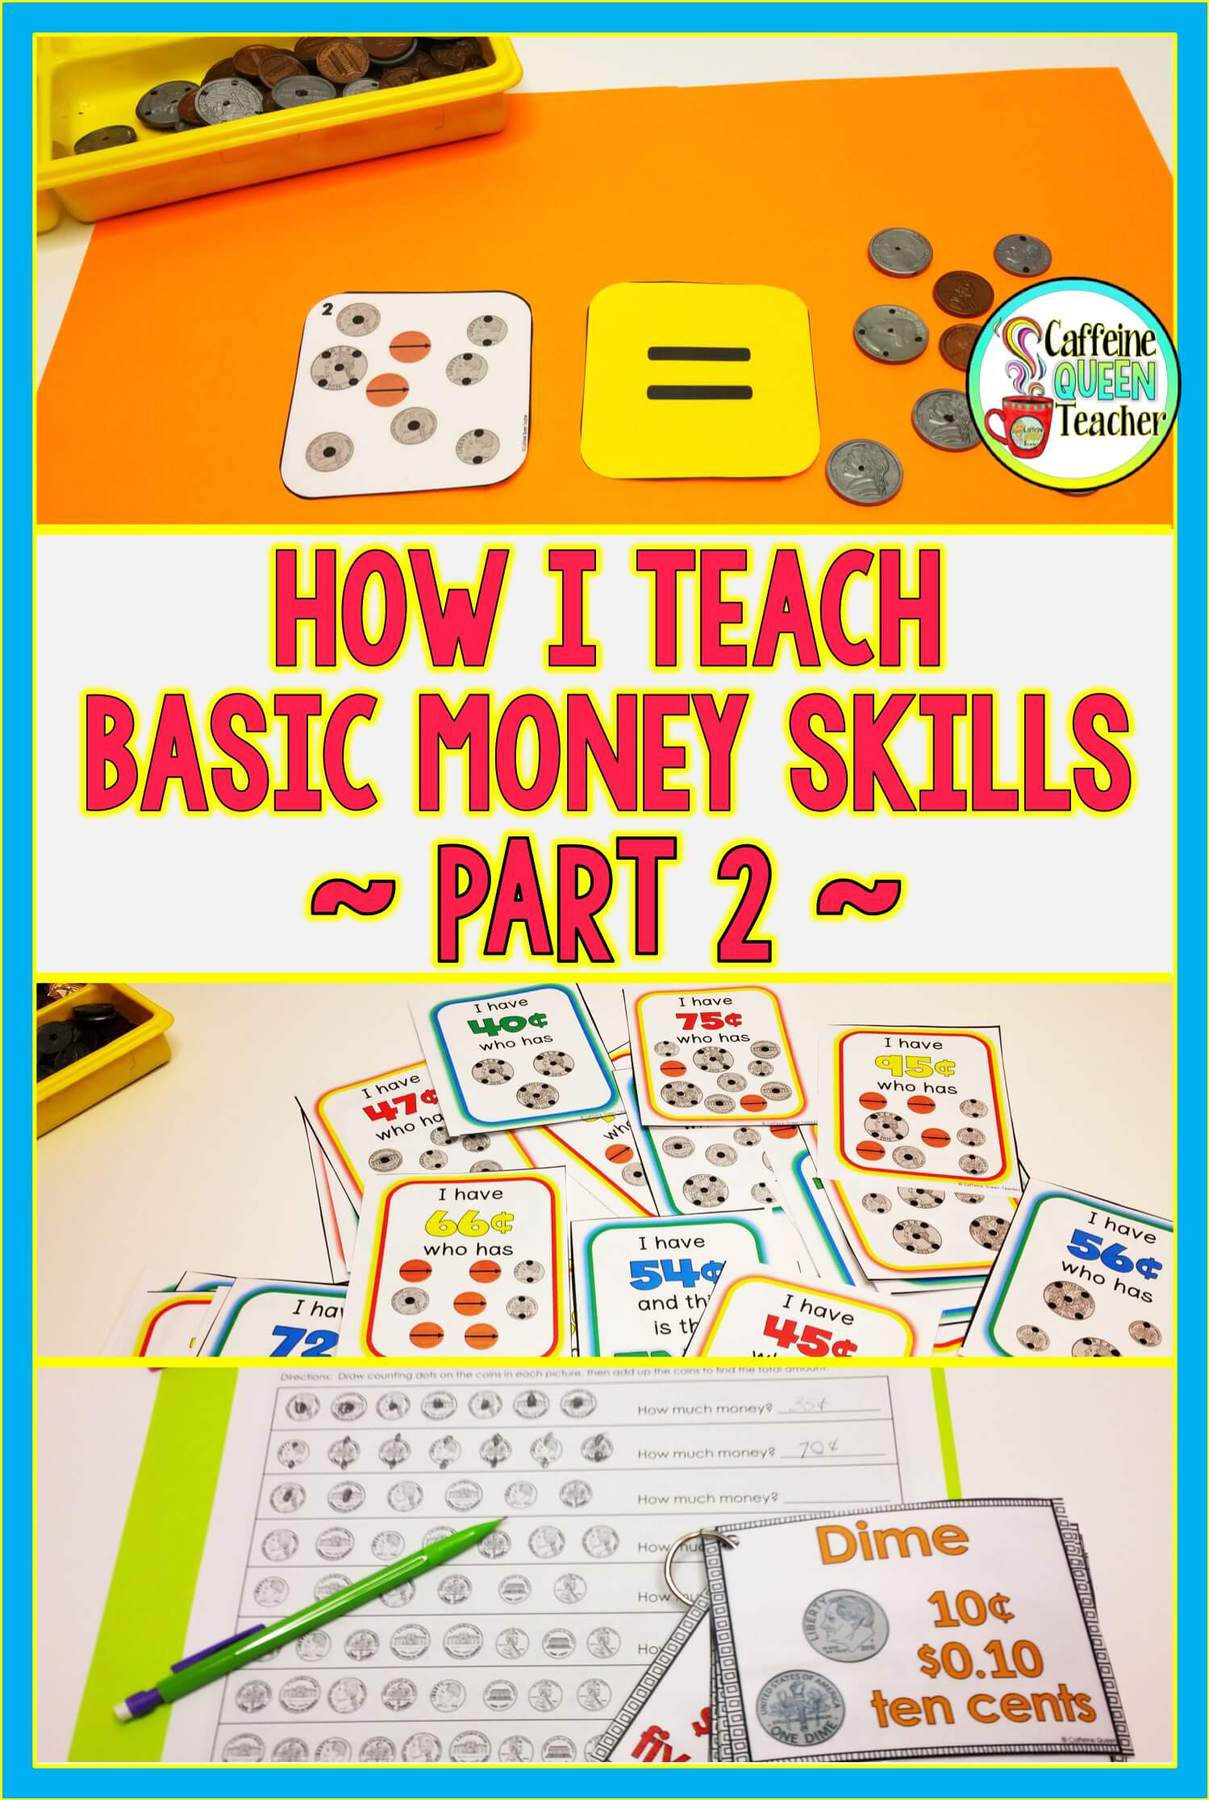 how-i-teach-money-skills-part-2